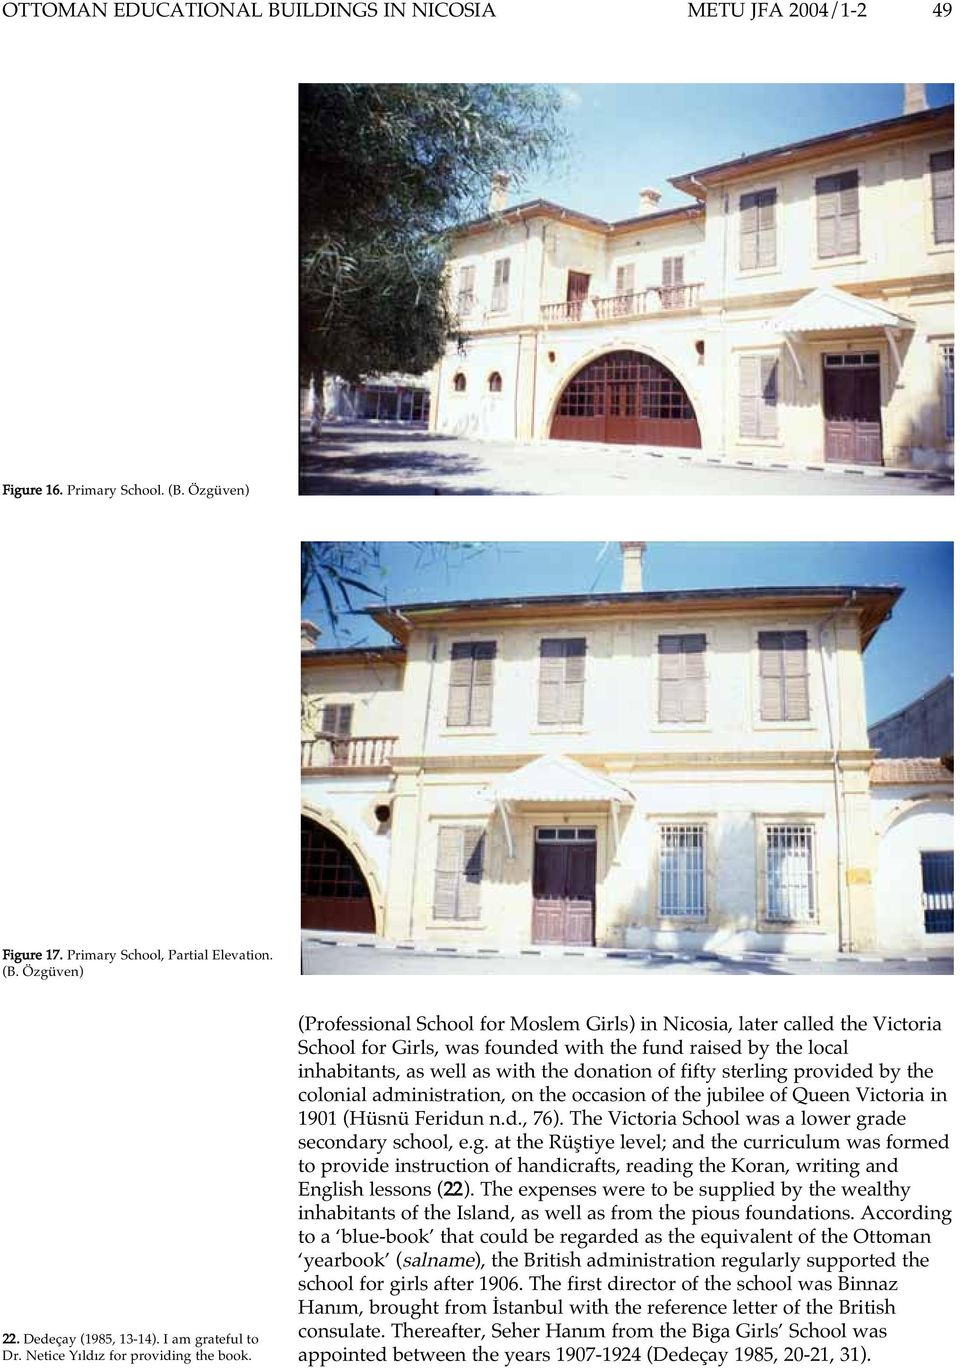 (Professional School for Moslem Girls) in Nicosia, later called the Victoria School for Girls, was founded with the fund raised by the local inhabitants, as well as with the donation of fifty